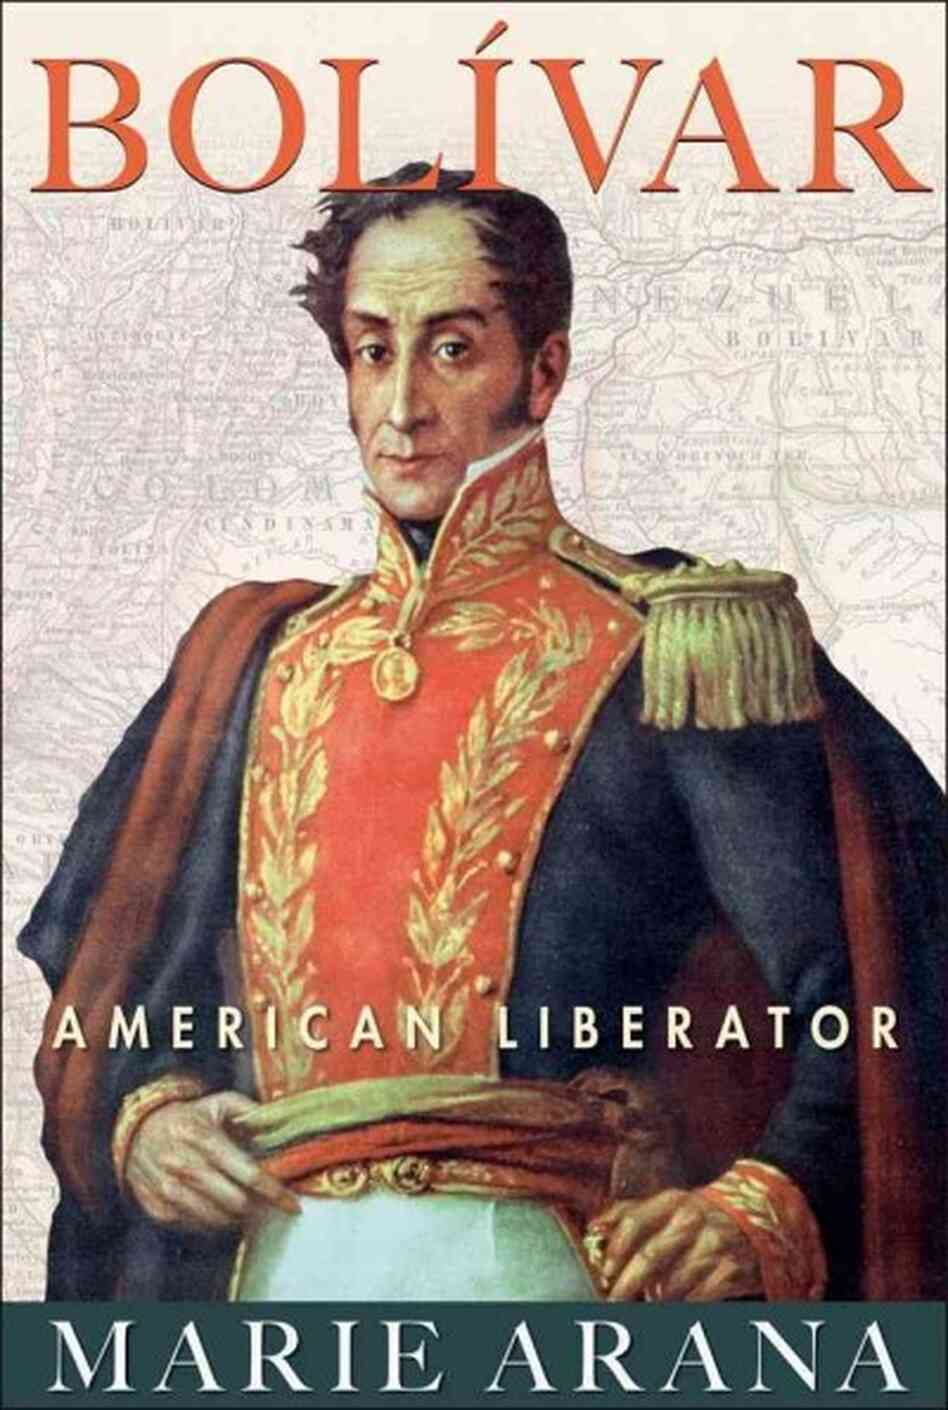 the life of simon bolivar el liberator General sim�n bol�var (1783-1830), called el liberator, and sometimes the george washington of latin america, was the leading hero of the latin american independence movement.